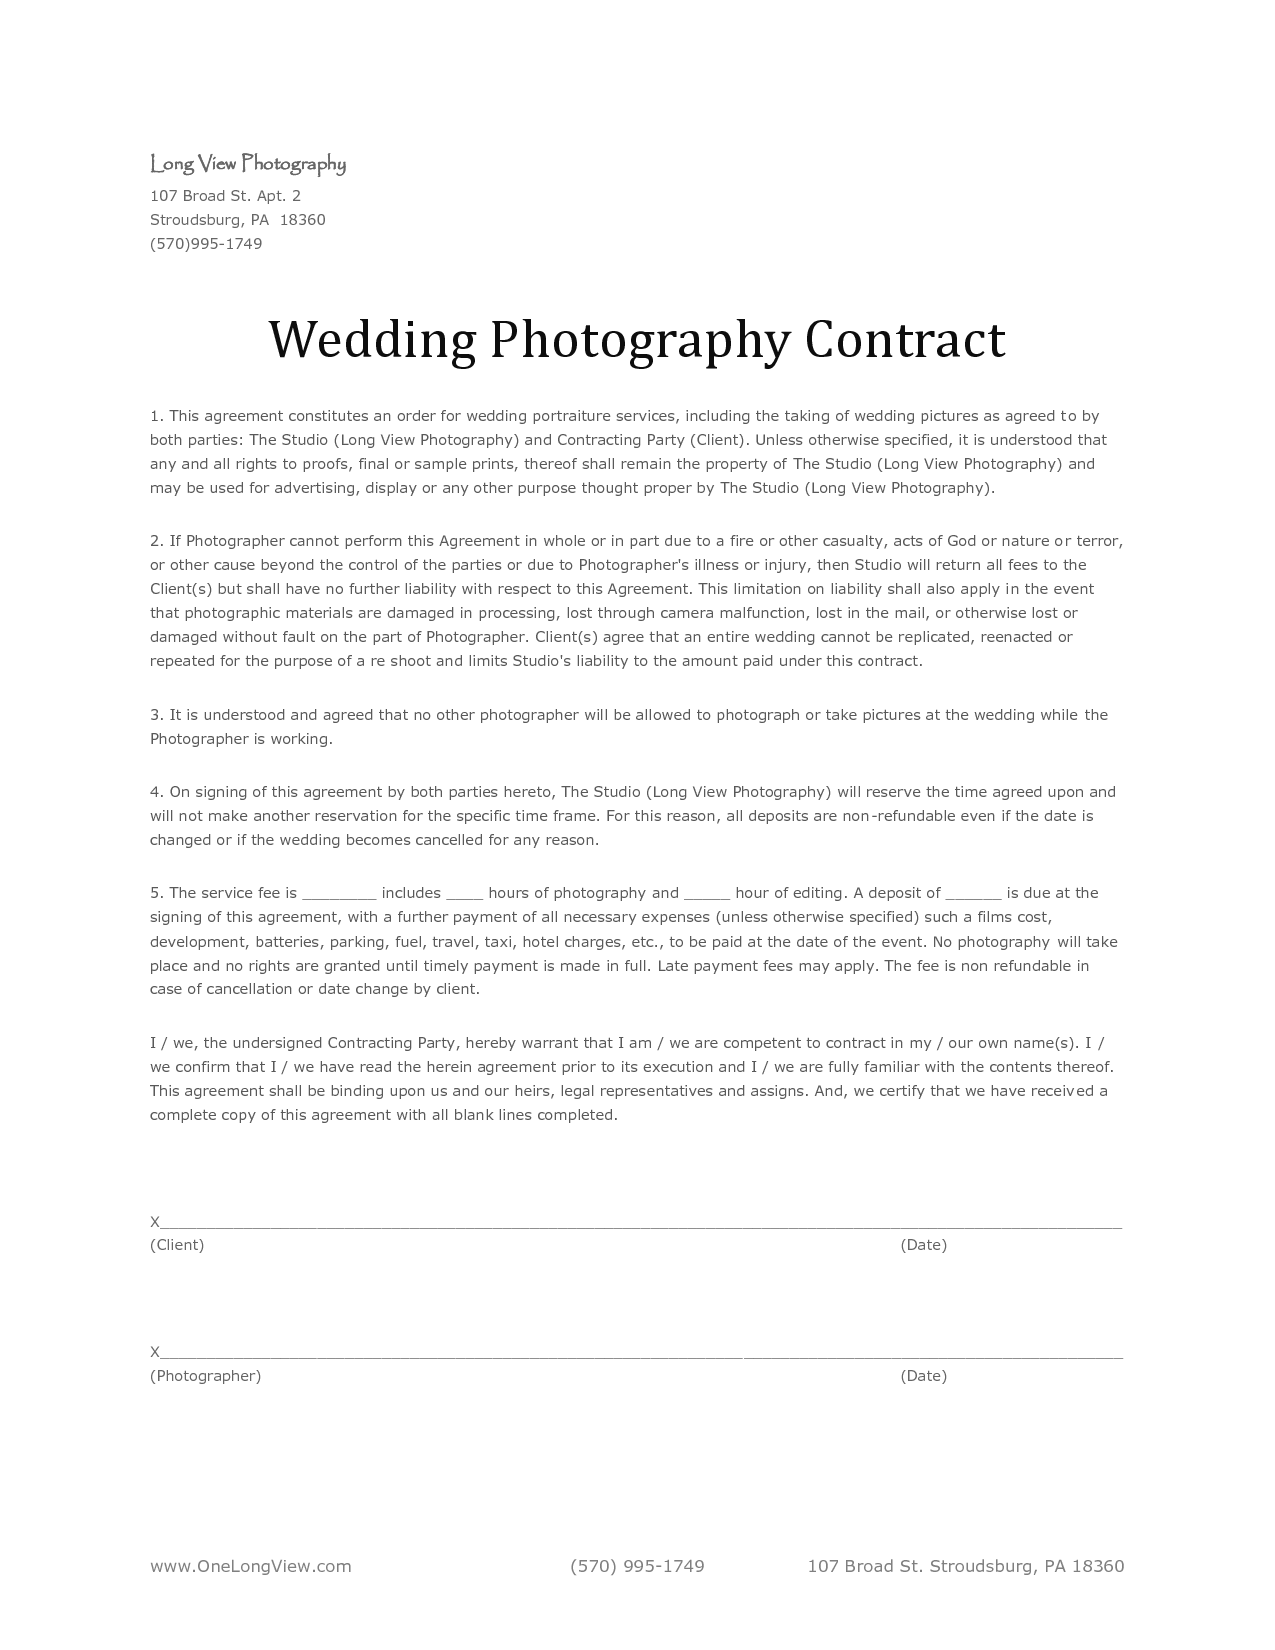 Basic Wedding Photography Contracts | Wedding Photography Contract